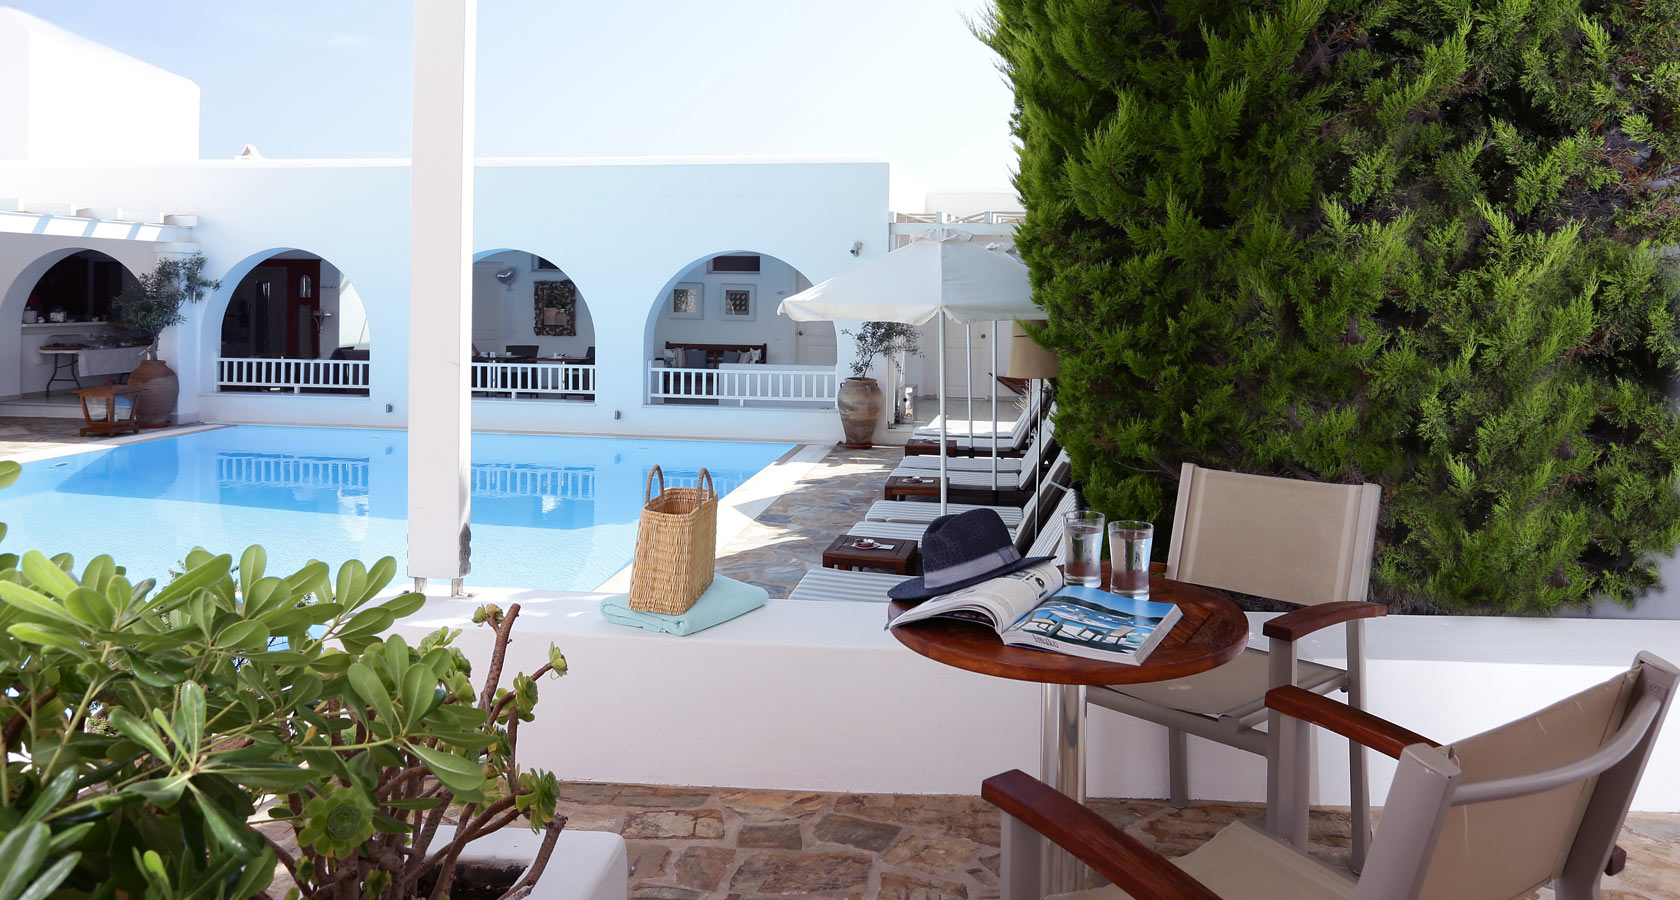 Stelia Mare Hotel in Paros – Room with pool view